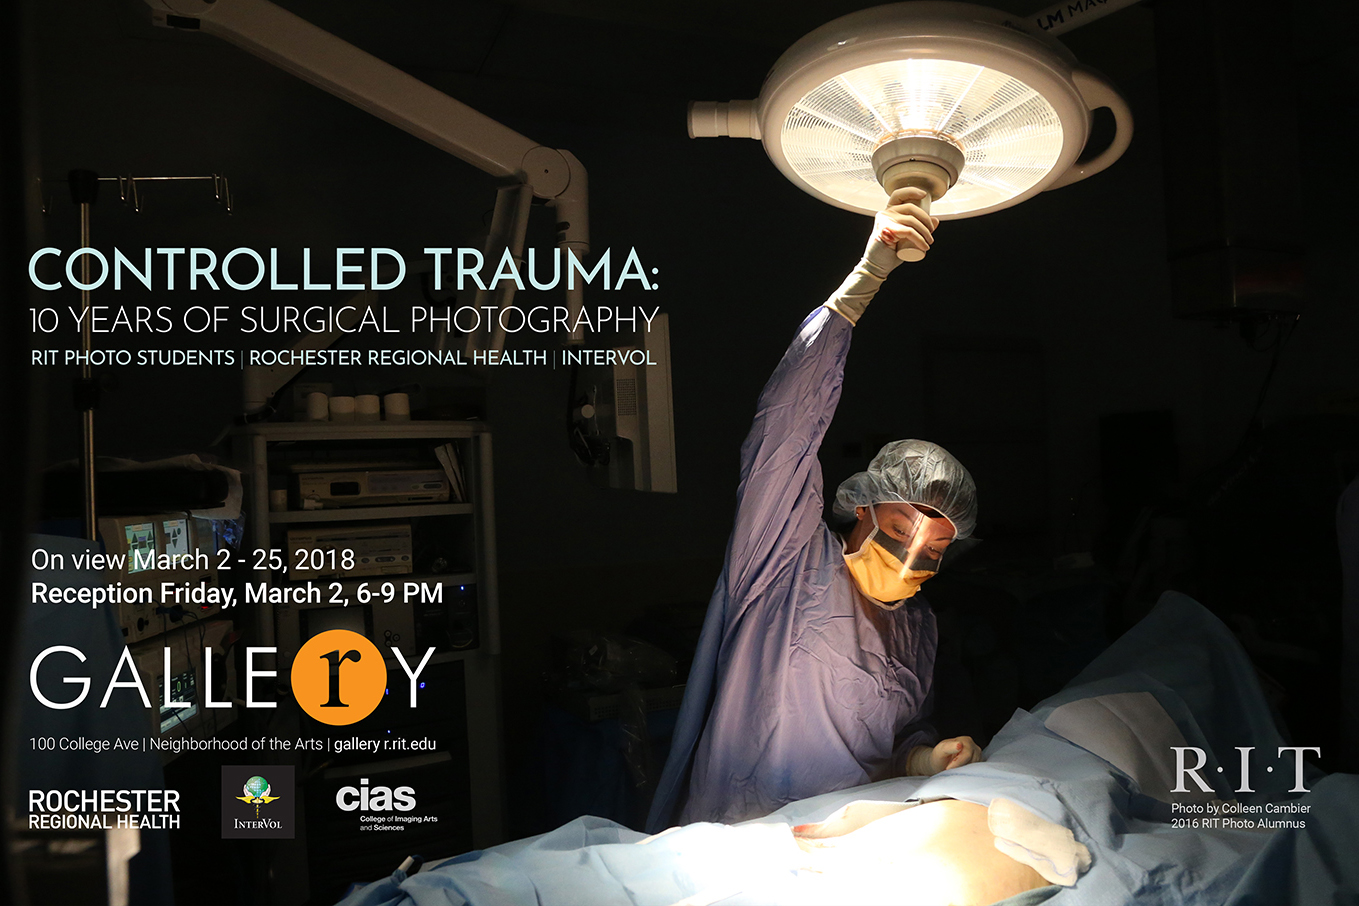 Controlled Trauma photography exhibit takes you inside the